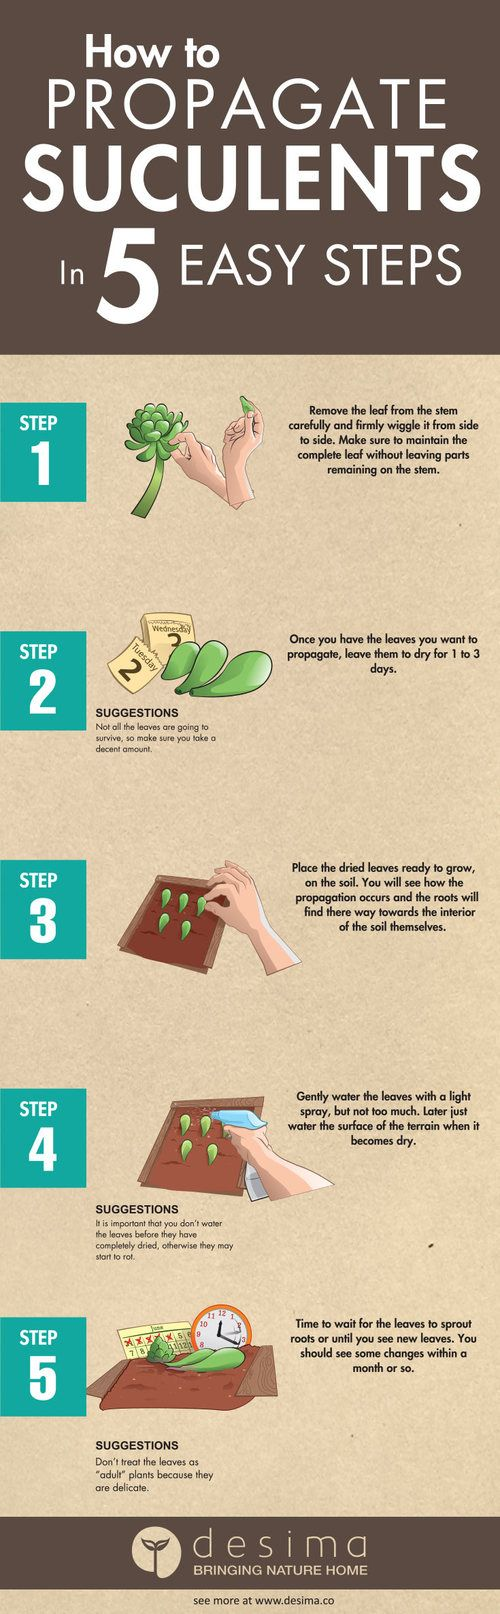 How to Propagate Succulents in 5 Easy Steps